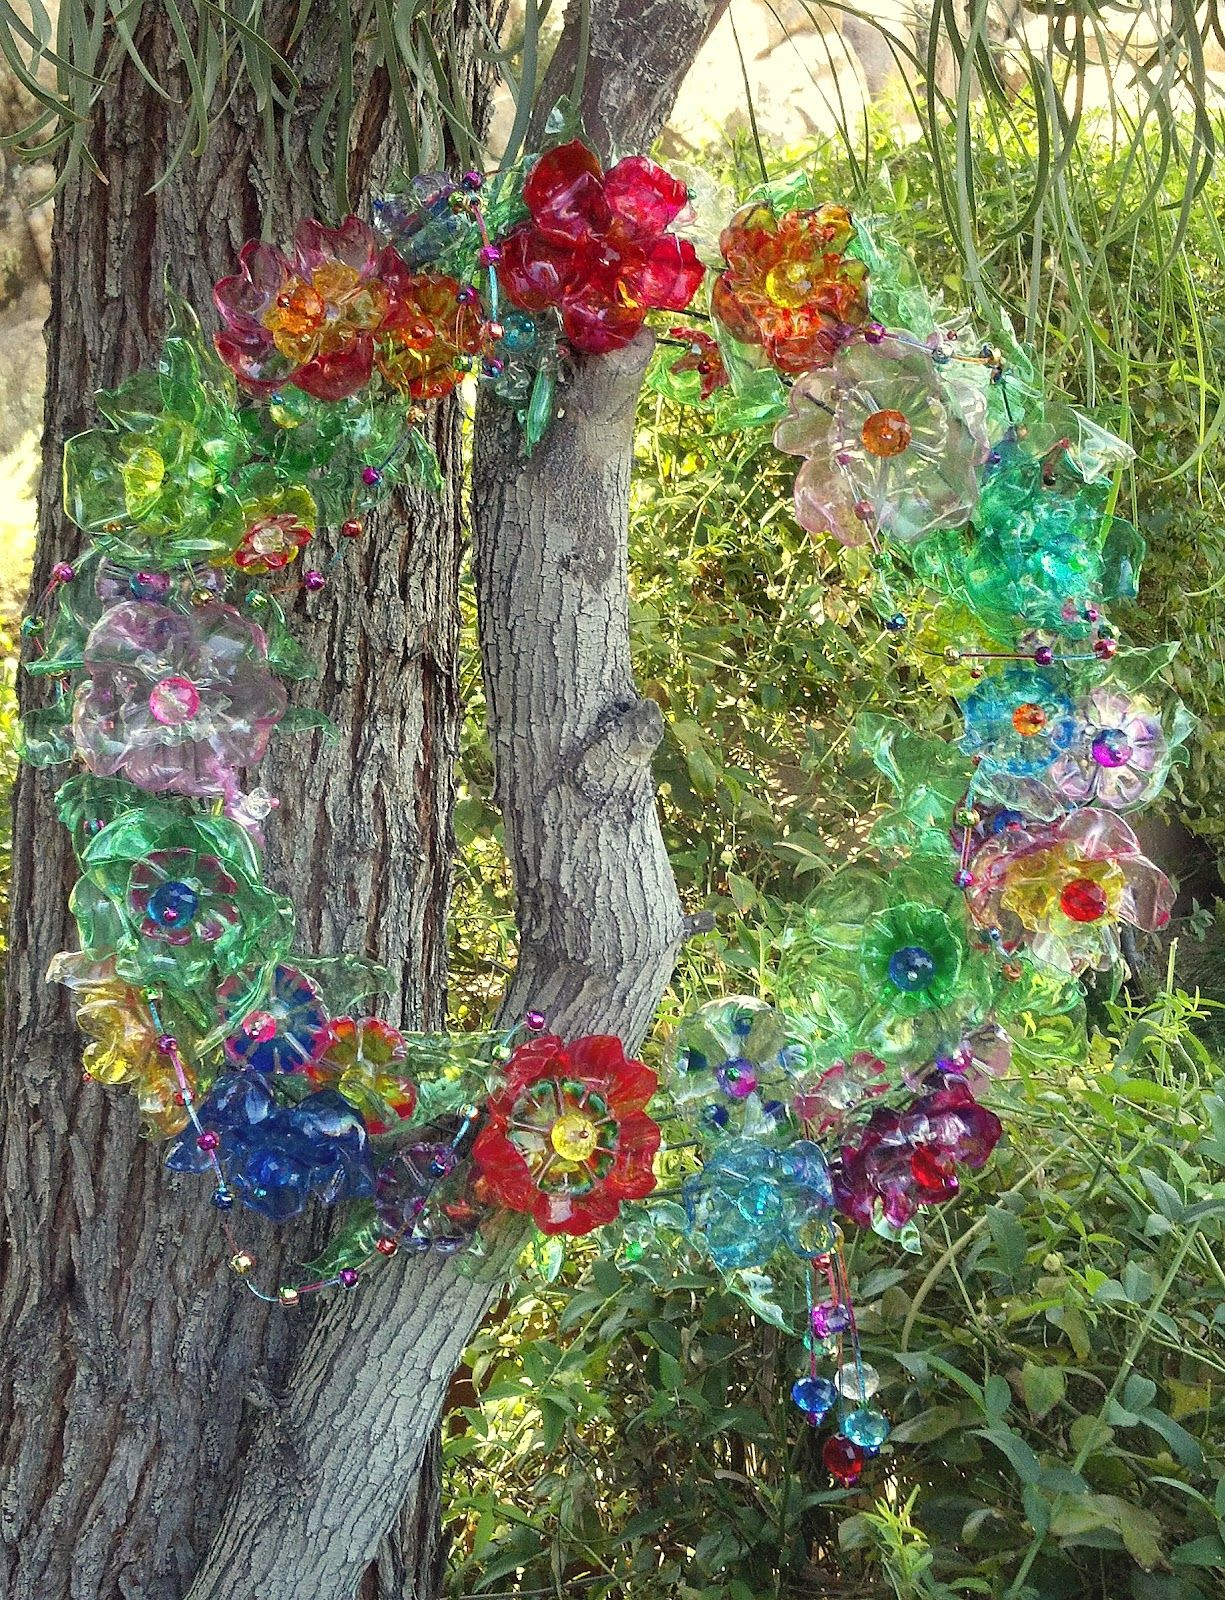 Glitterpooh discarded water bottles transformed into for Art made from plastic bottles